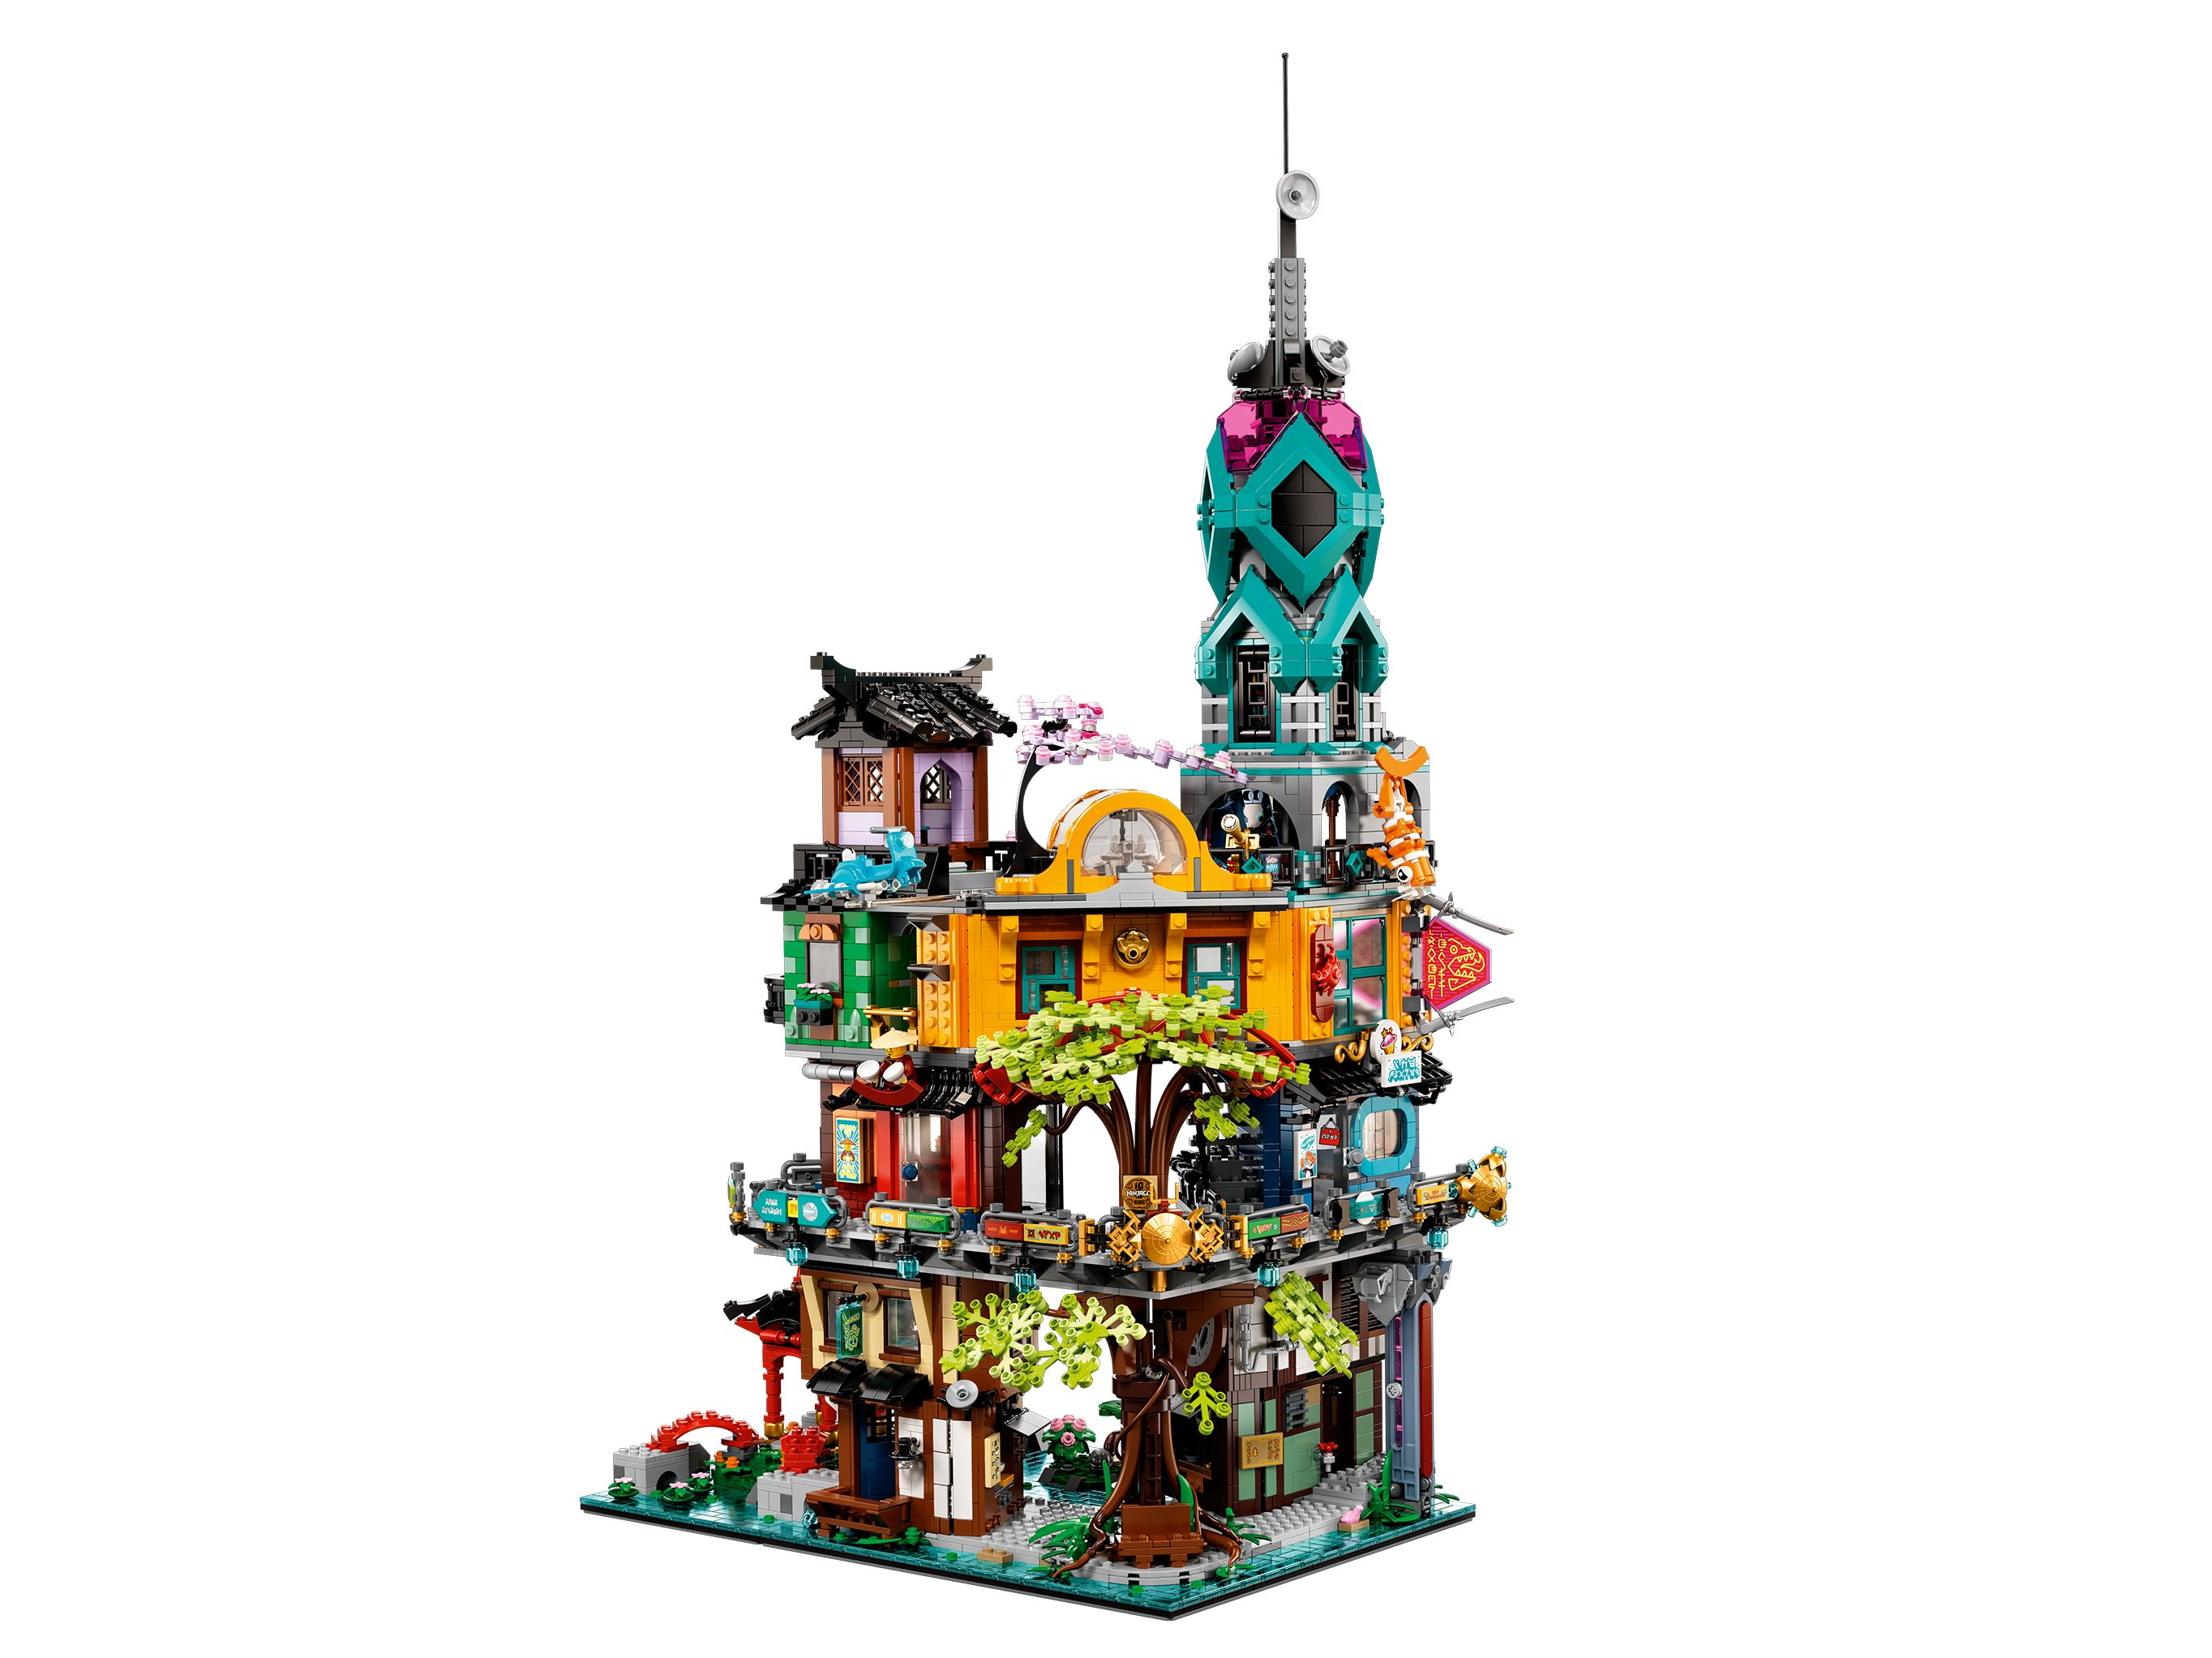 LEGO The LEGO Ninjago Movie 71741 Die Gärten von Ninjago City LEGO_71741_alt5.jpg